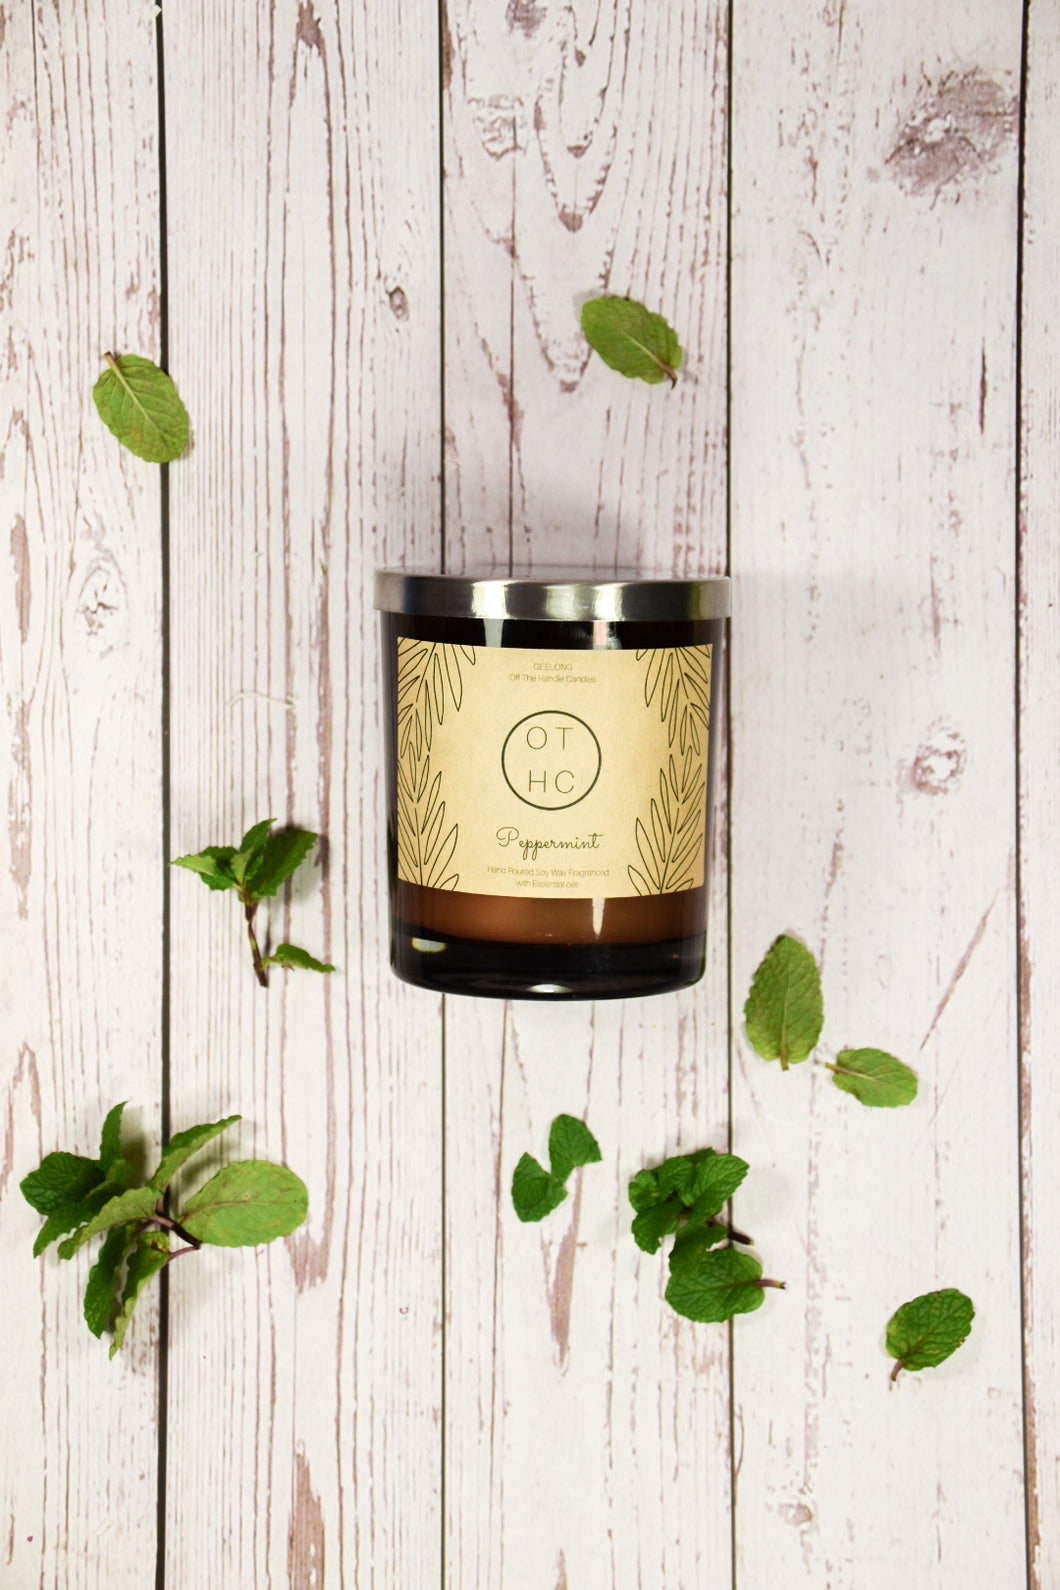 Peppermint Essential Oil candle